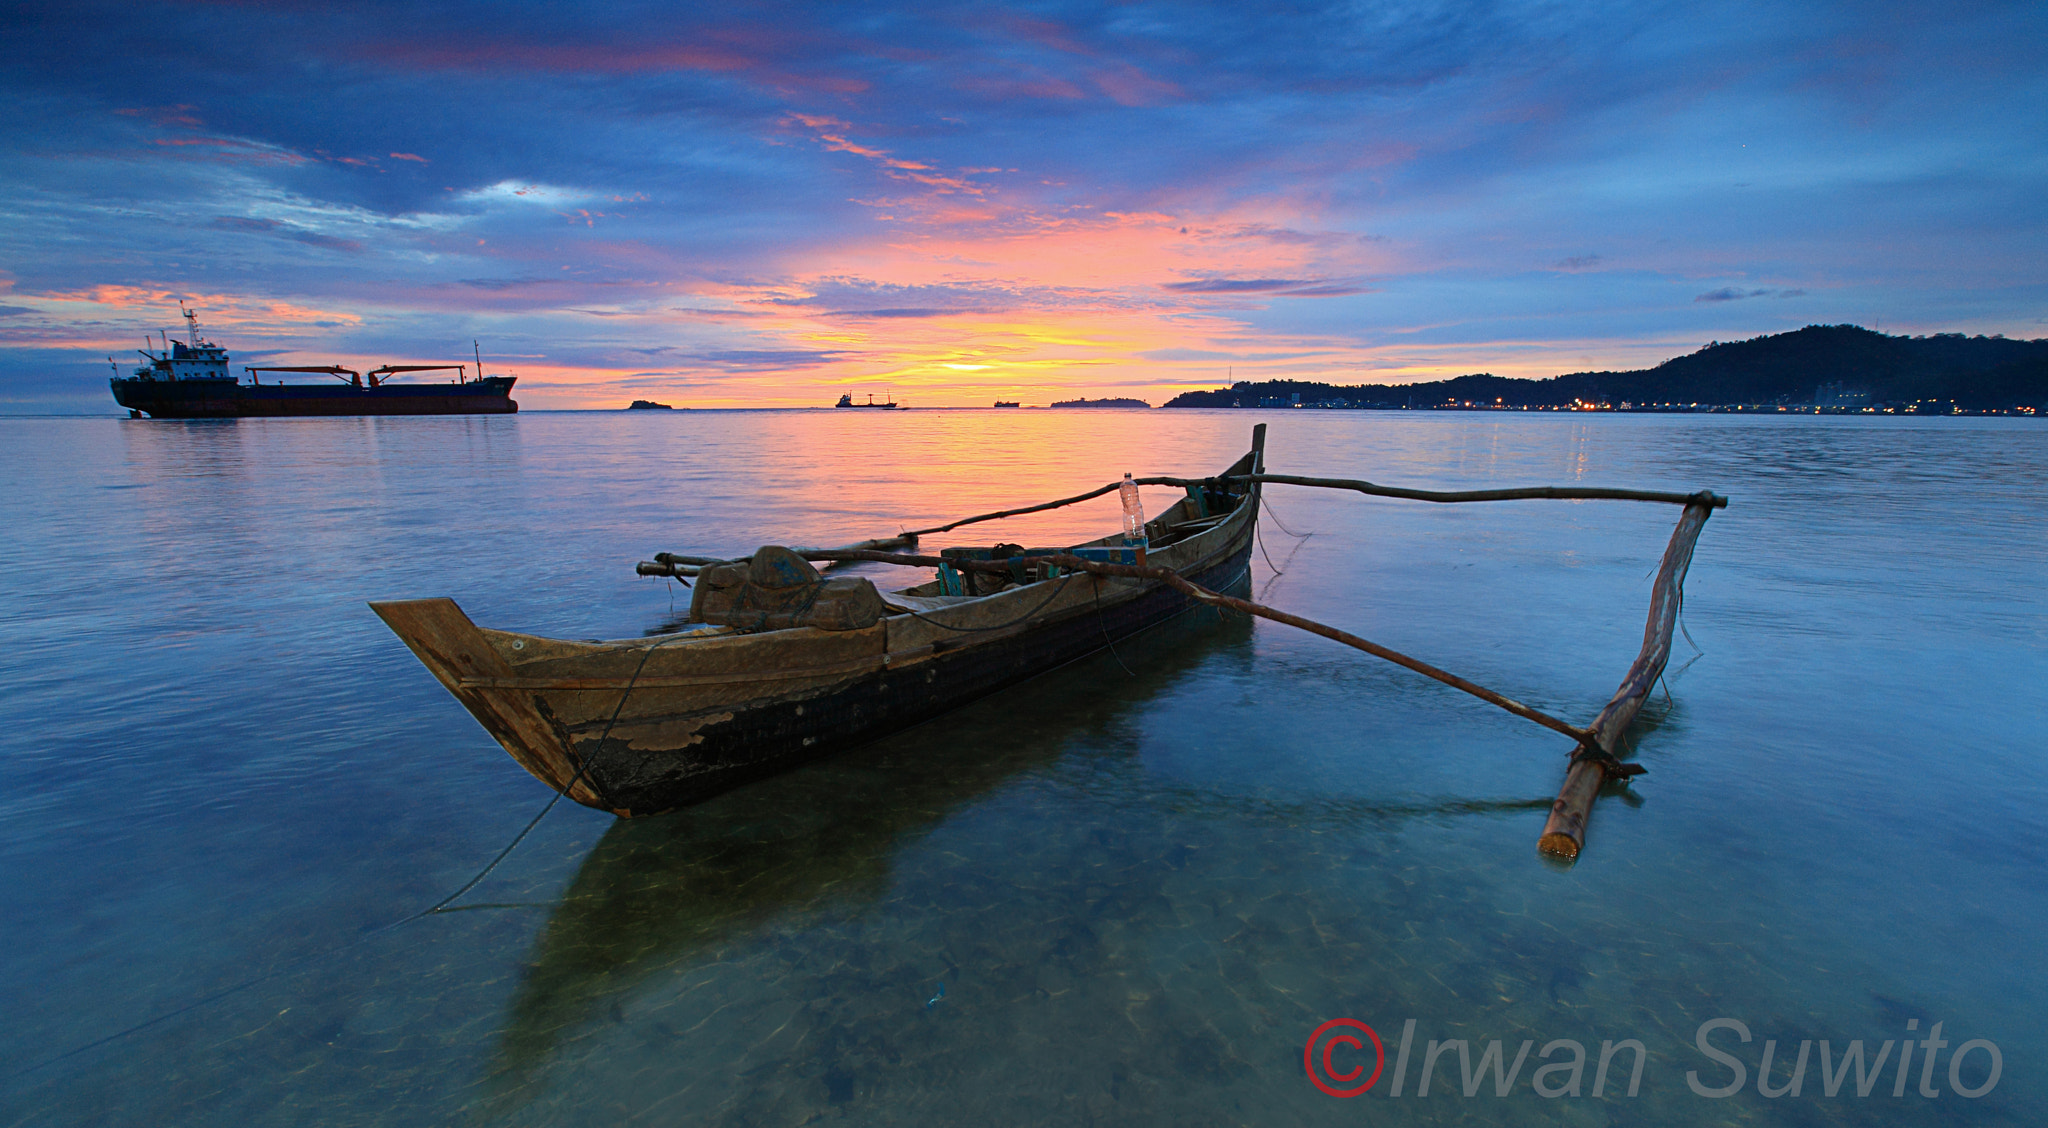 Photograph fisherman's boat by Irwan Suwito on 500px